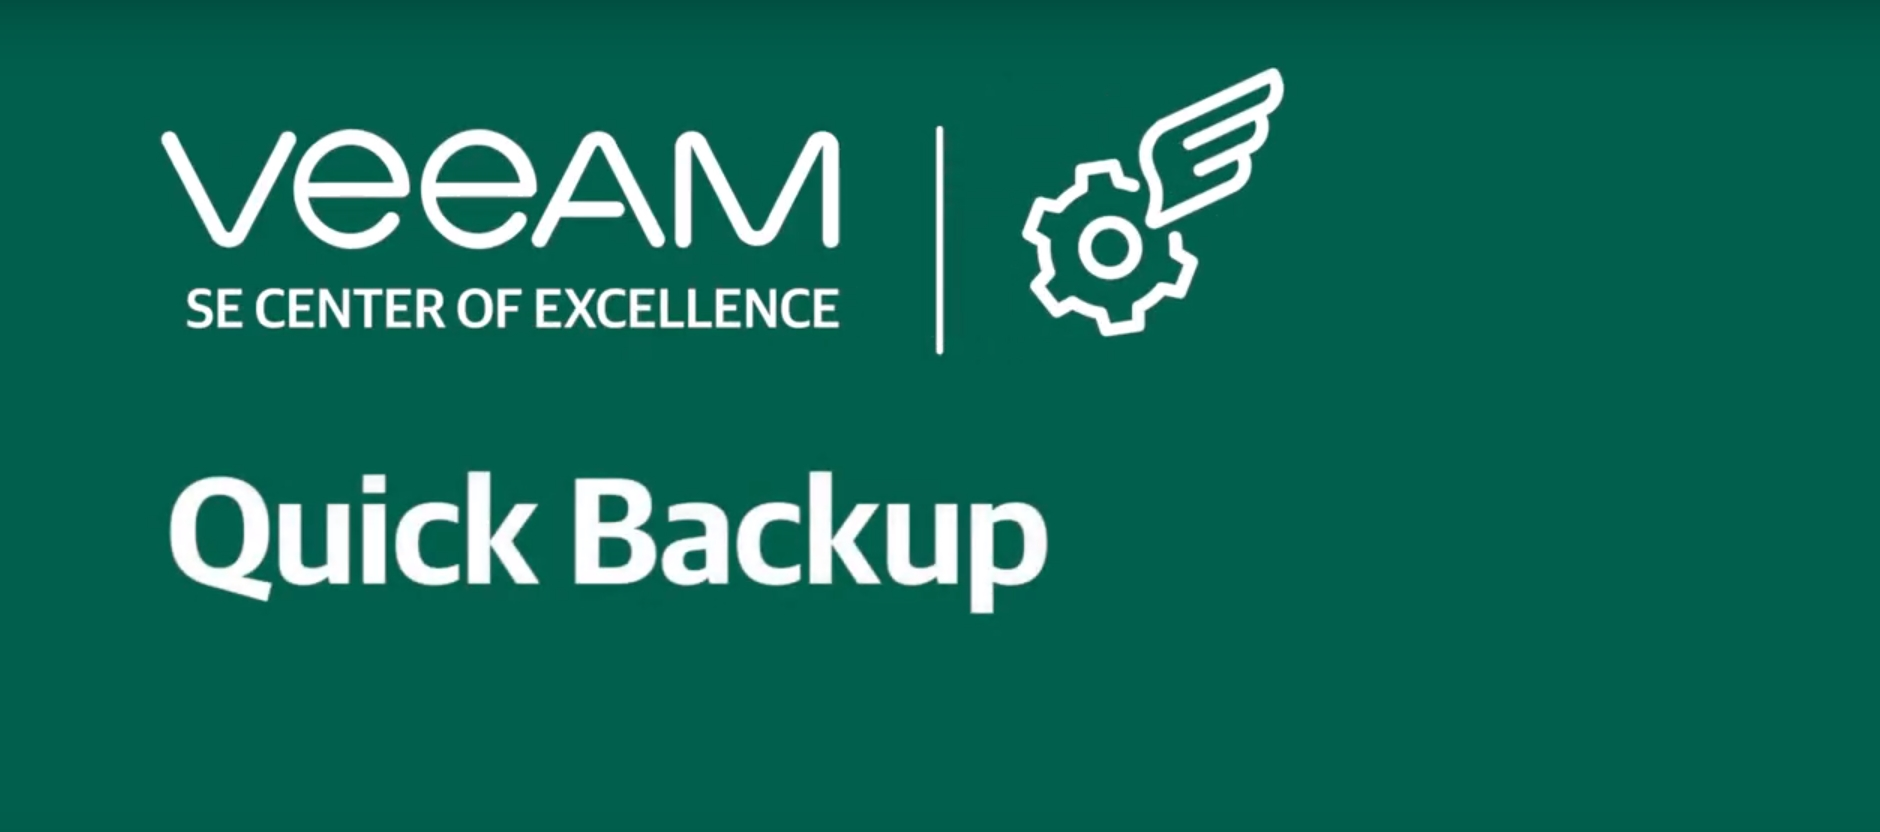 What is quick backup?